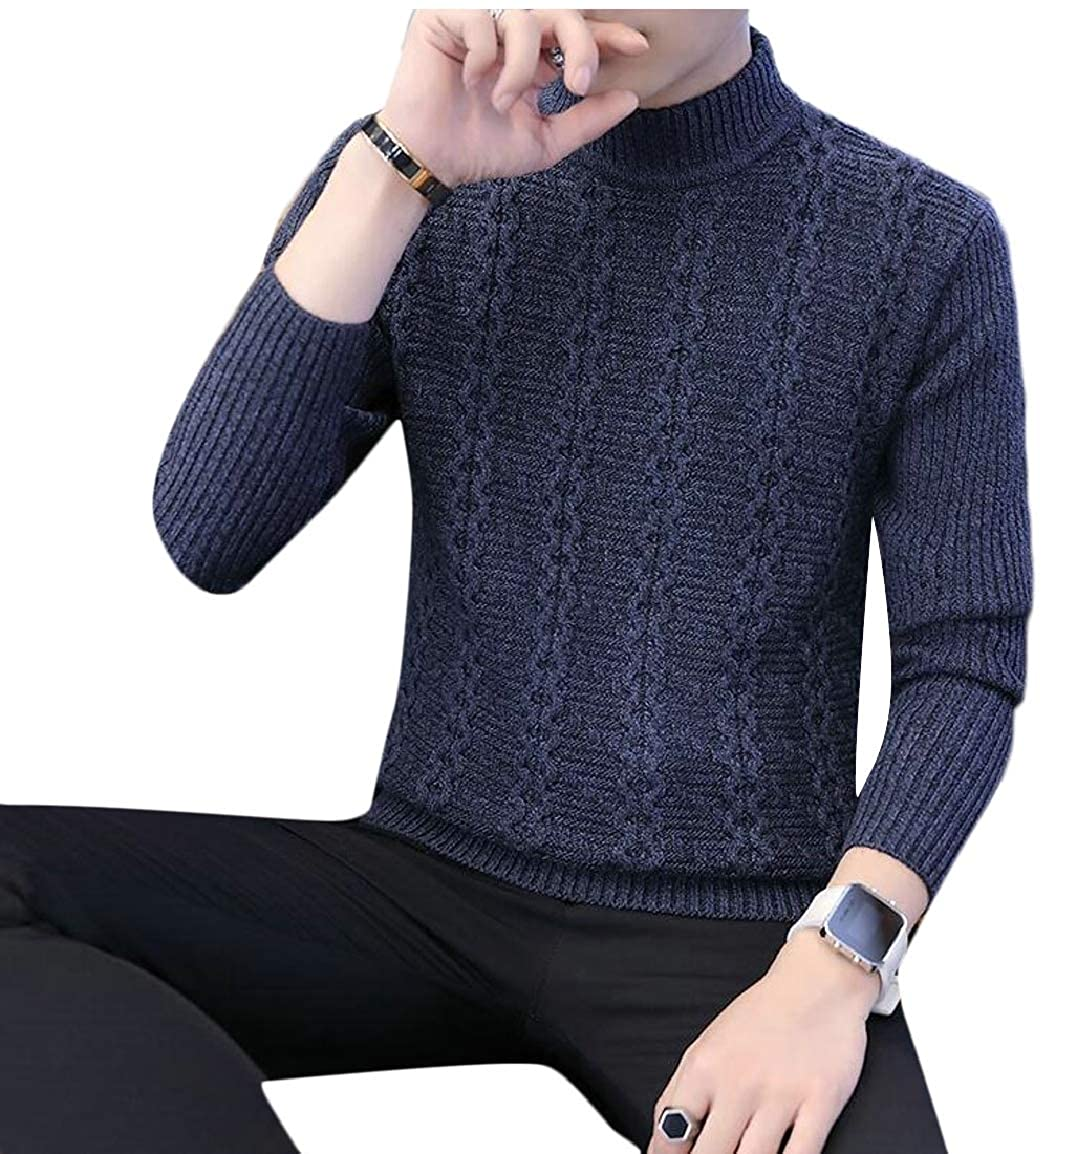 HTOOHTOOH Mens Casual Slim Fit Long Sleeve Cable Knitwear Pullover Sweater